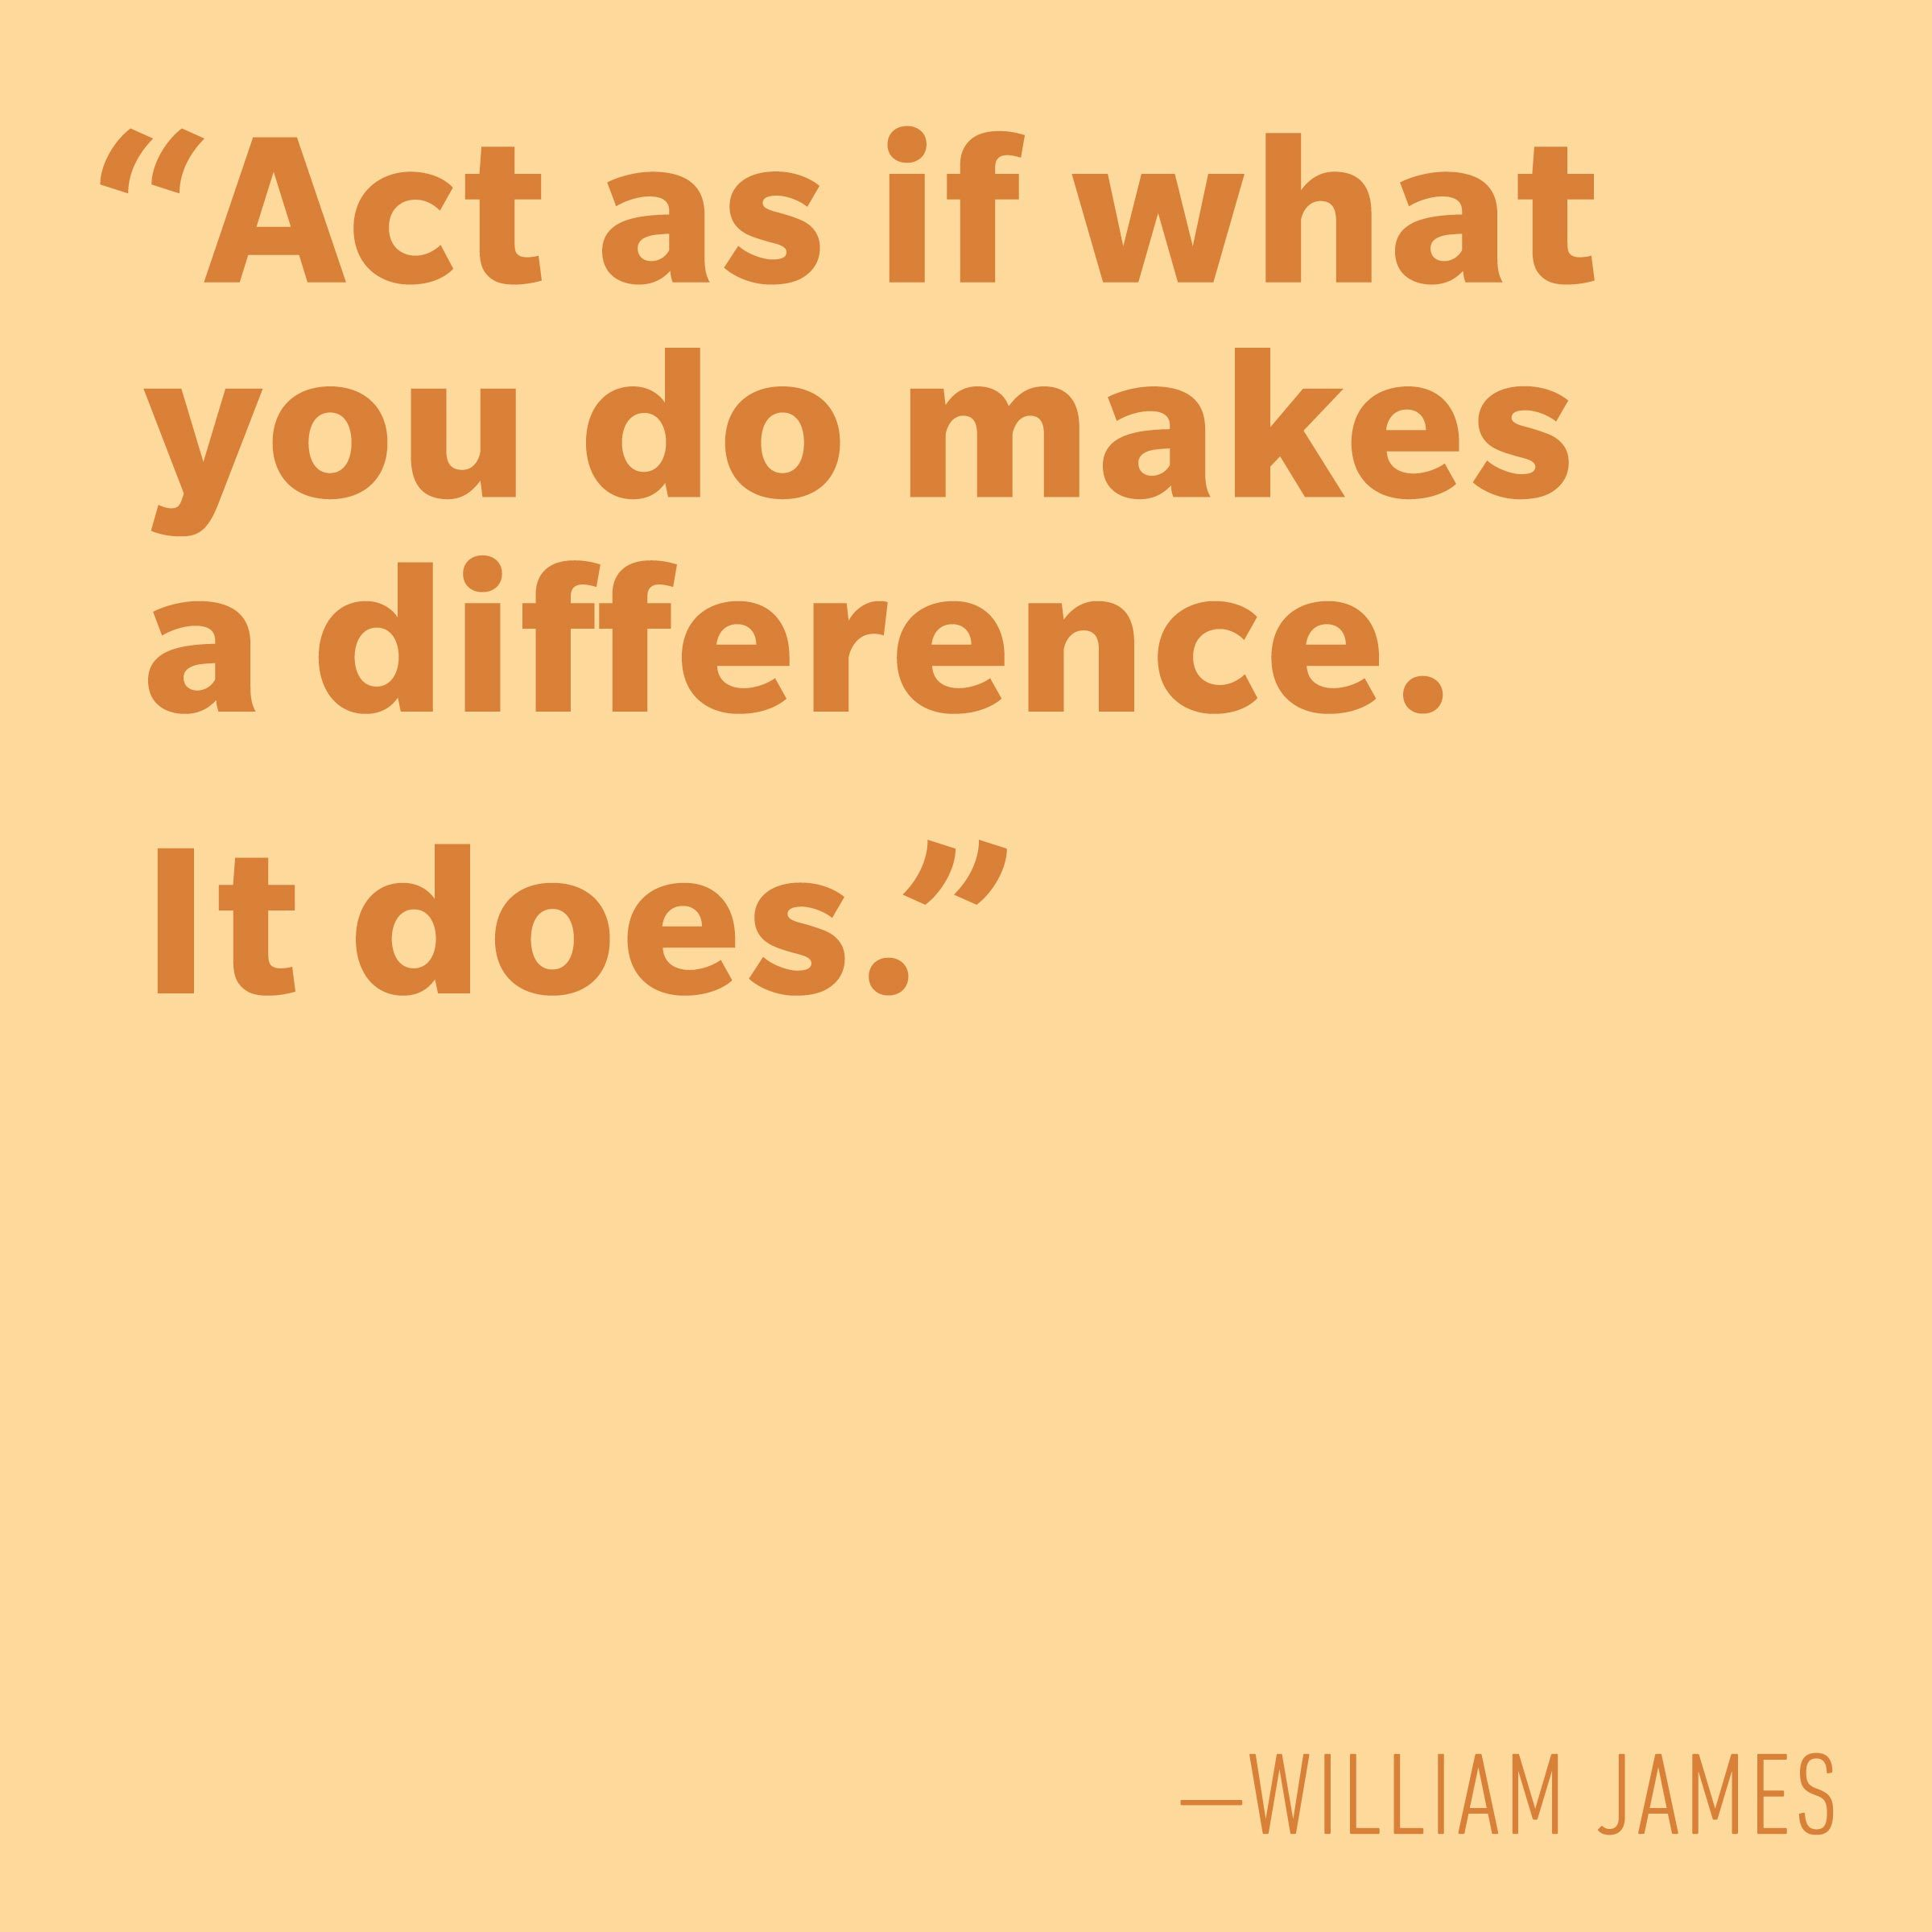 Motivational quotes - William James